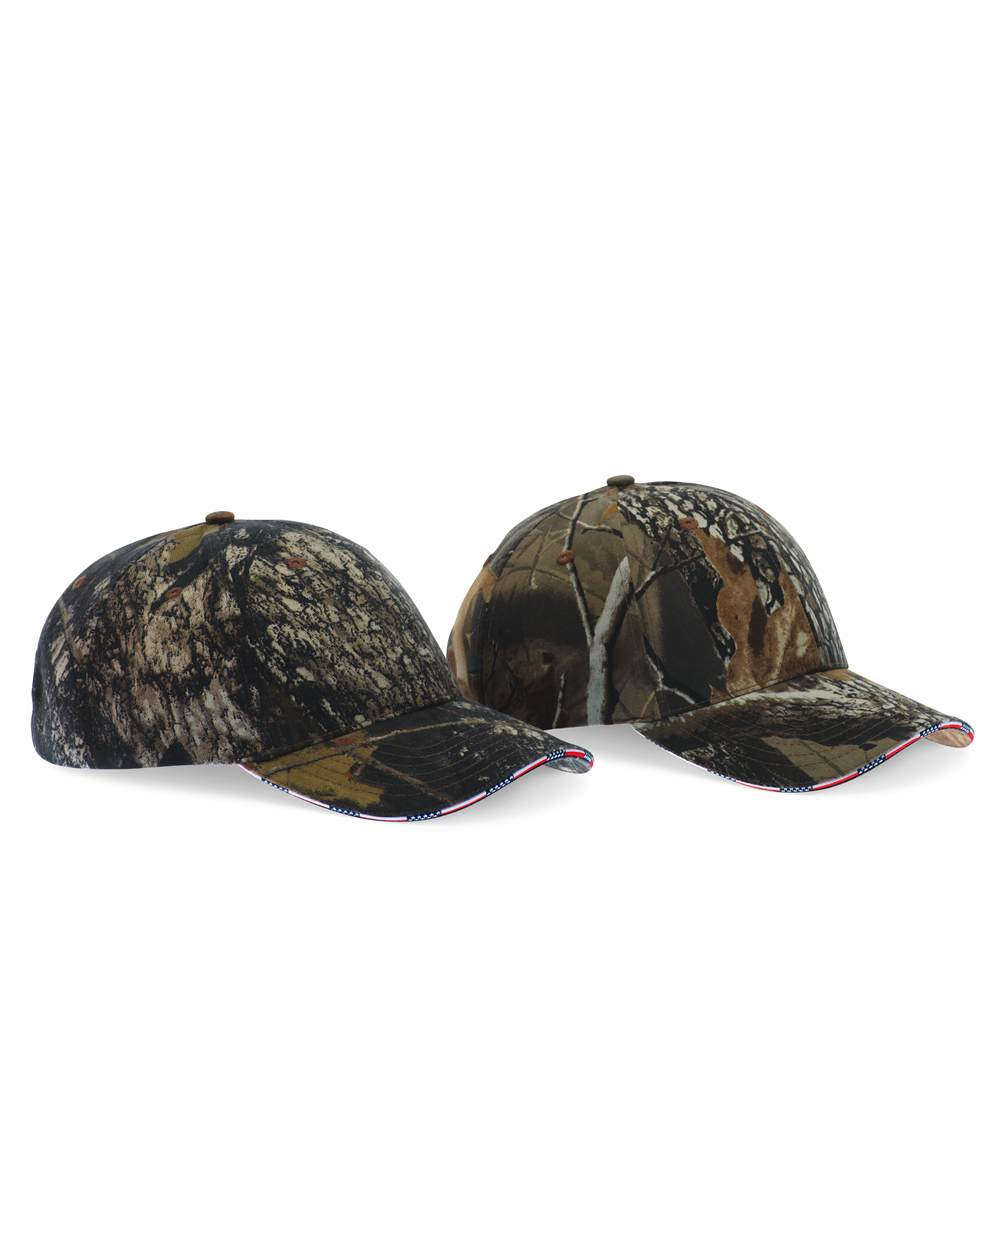 KATI LC924 Camouflage Cap with American Flag Sandwich ...